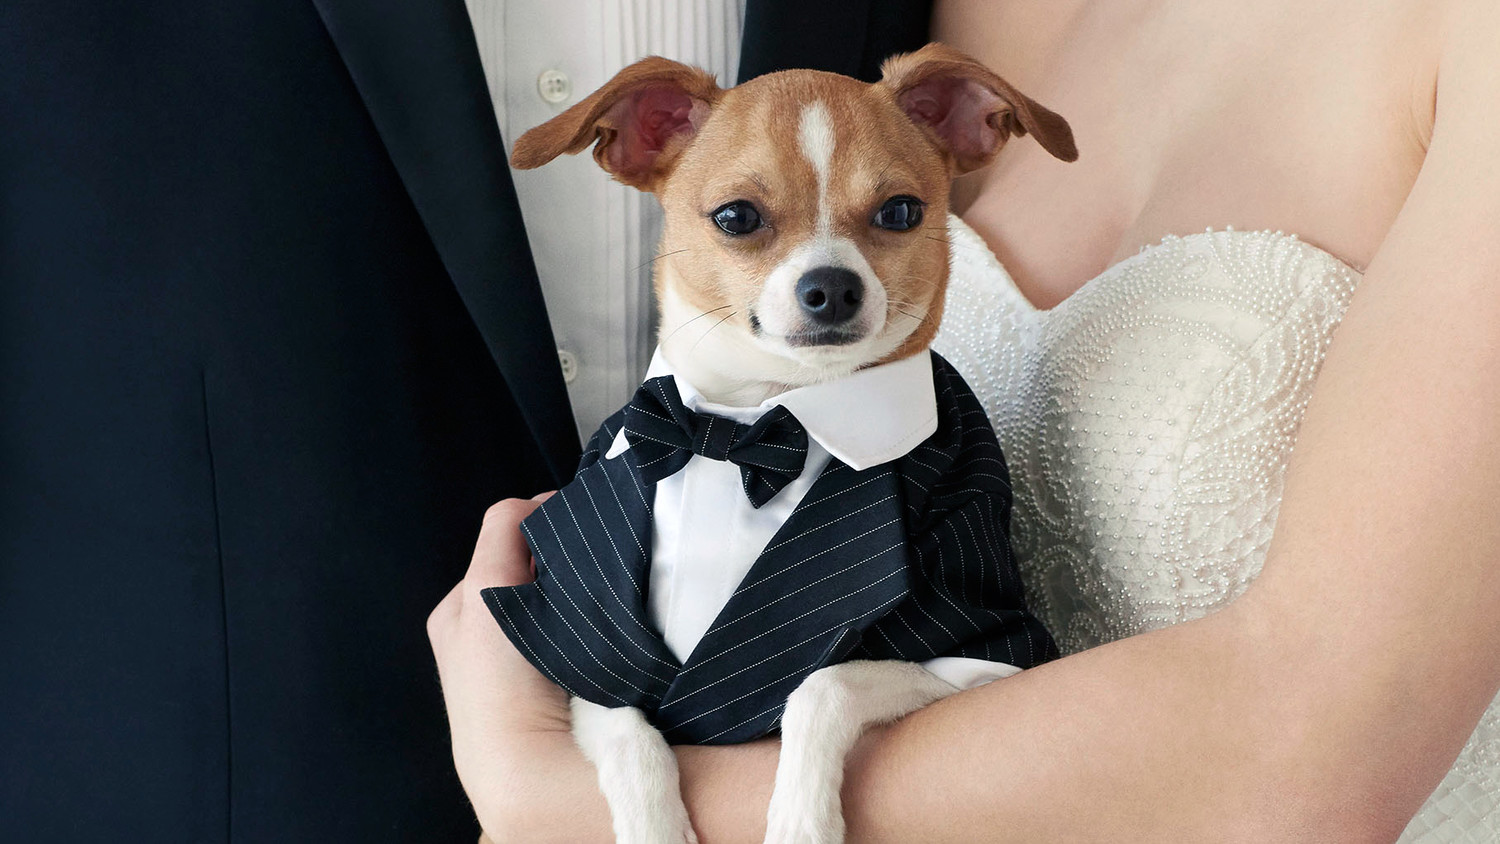 Awesome Wedding Attire For Dogs Ideas - Styles & Ideas 2018 - sperr.us